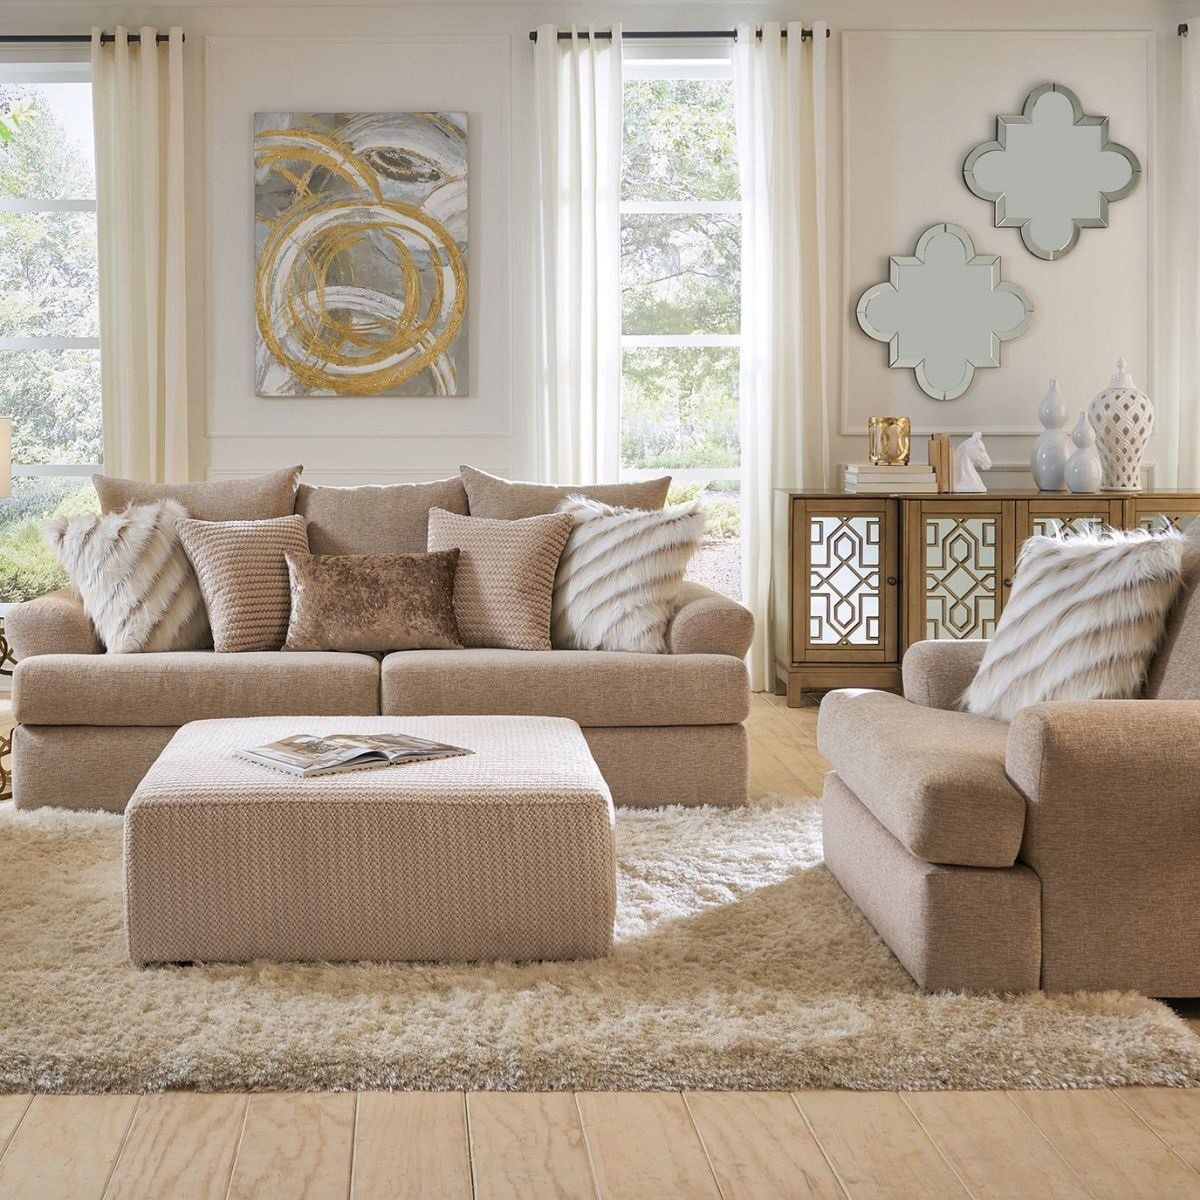 30 Great Image Of Beige Living Room Janicereyesphotography Com